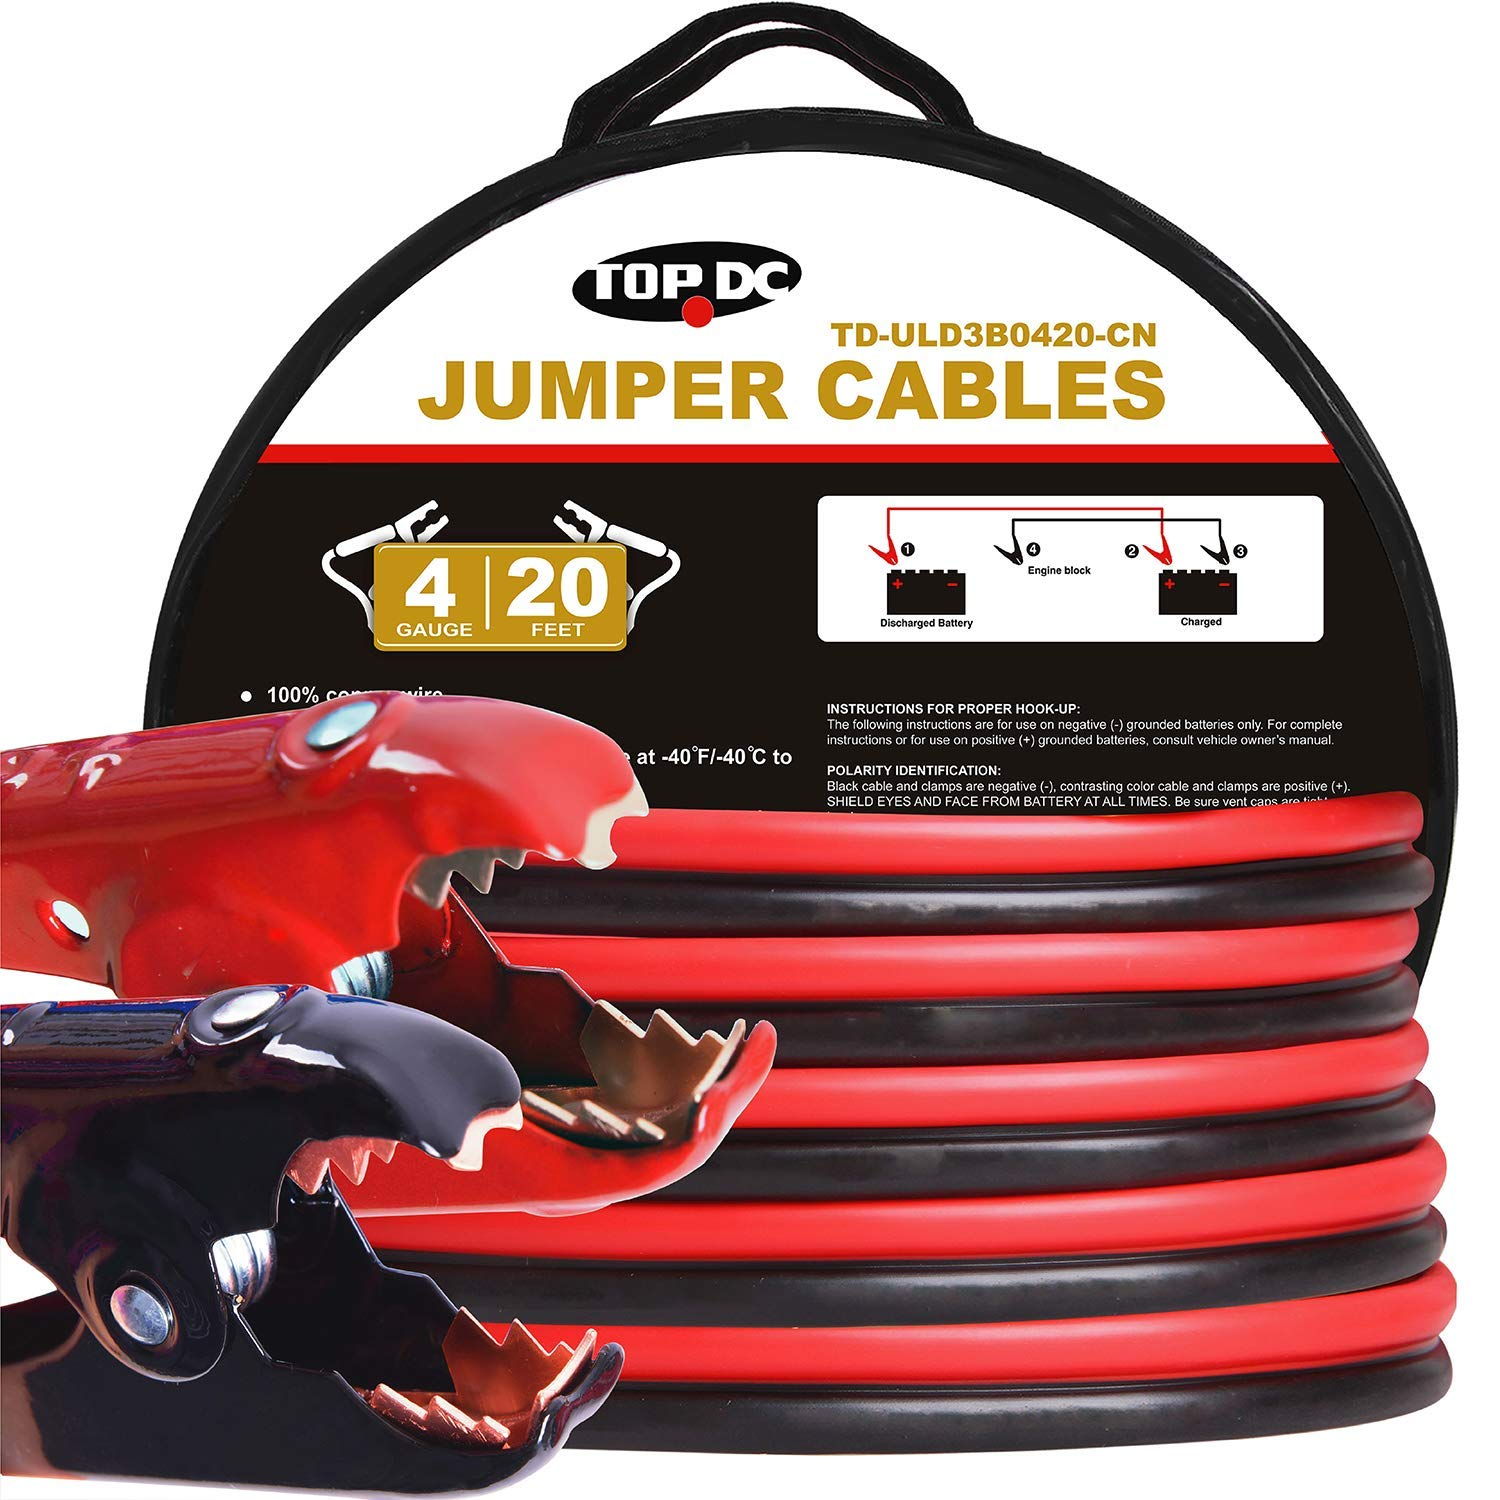 TOPDC 100% Copper Jumper Cables 4 Gauge 20 Feet 480AMP Heavy Duty Booster Cables with Carry Bag and Safety Gloves (4AWG x 20Ft) by TOPDC